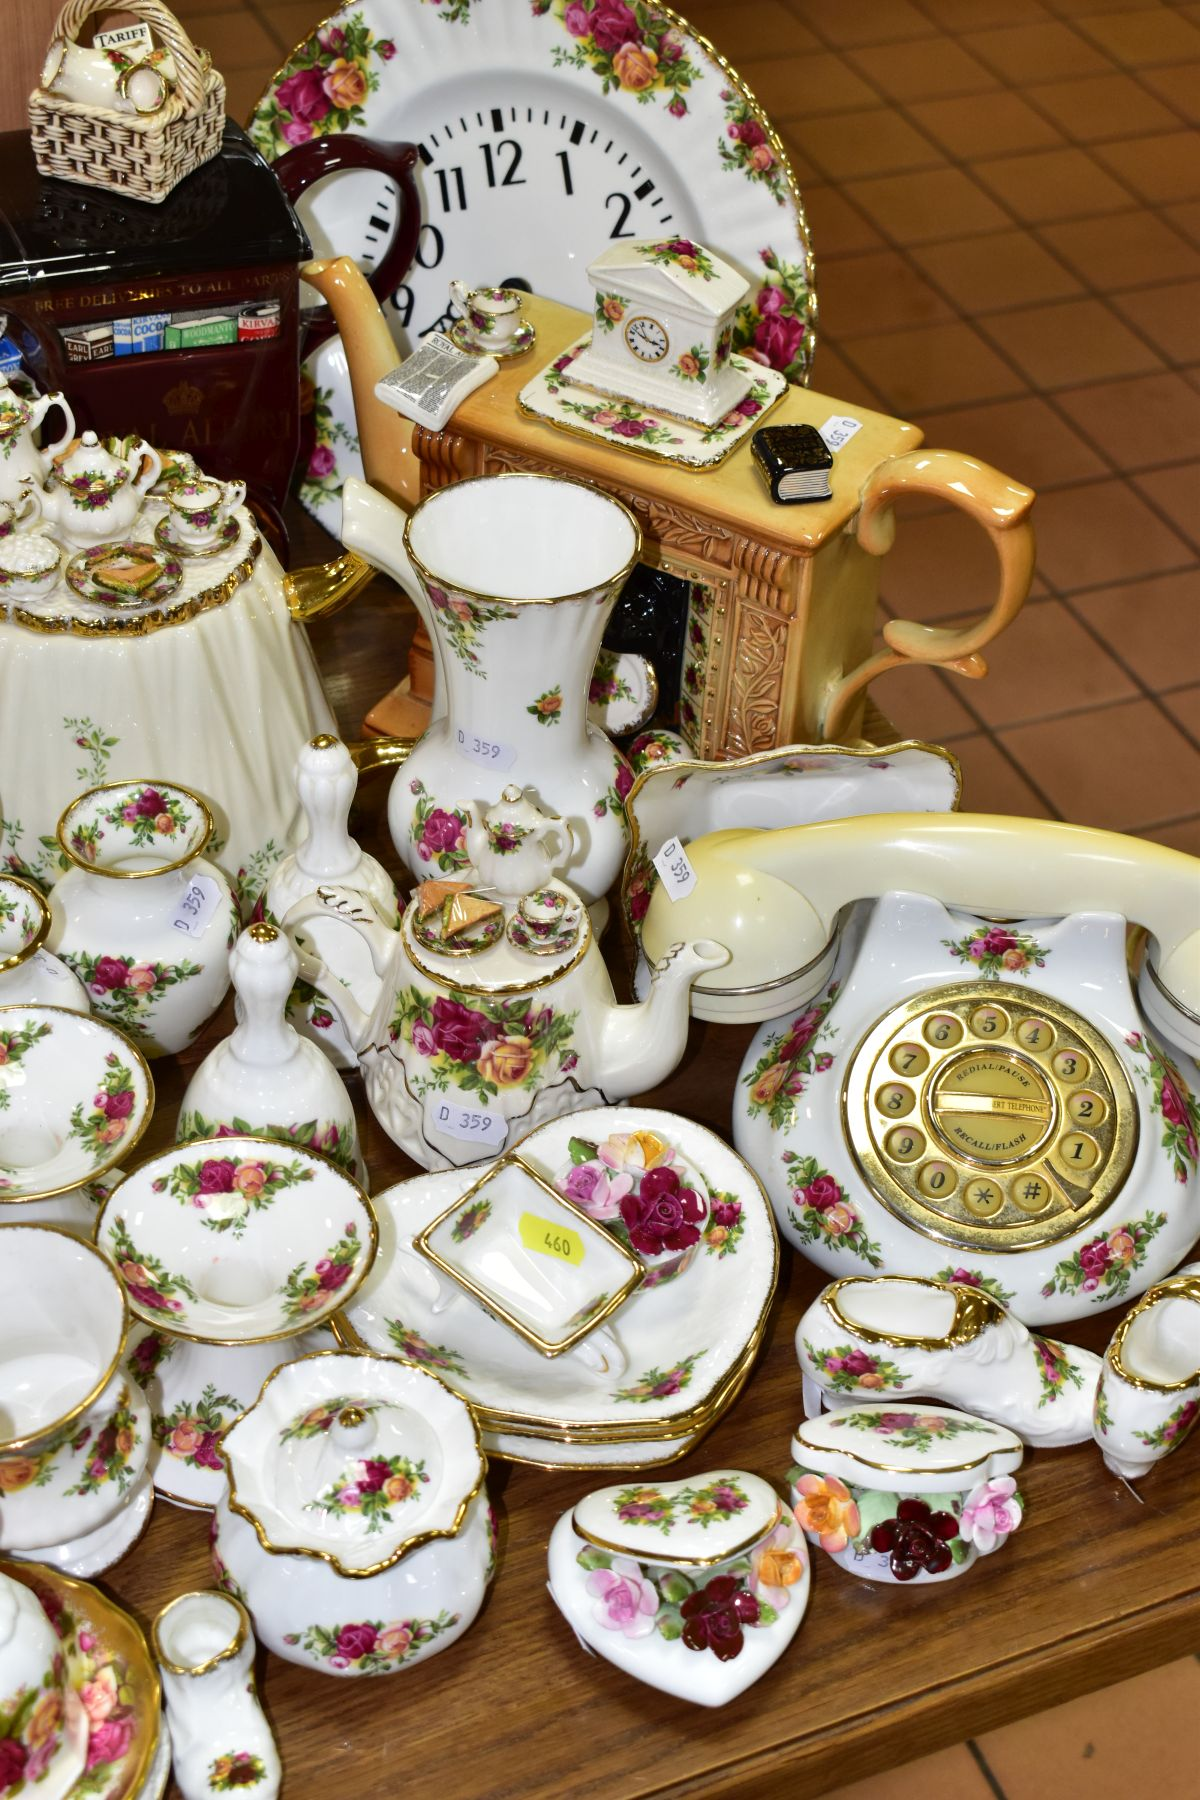 ROYAL ALBERT 'OLD COUNTRY ROSES' DINNER/TEA WARES, NOVELTY TEAPOTS AND TRINKETS, comprising two - Image 4 of 12